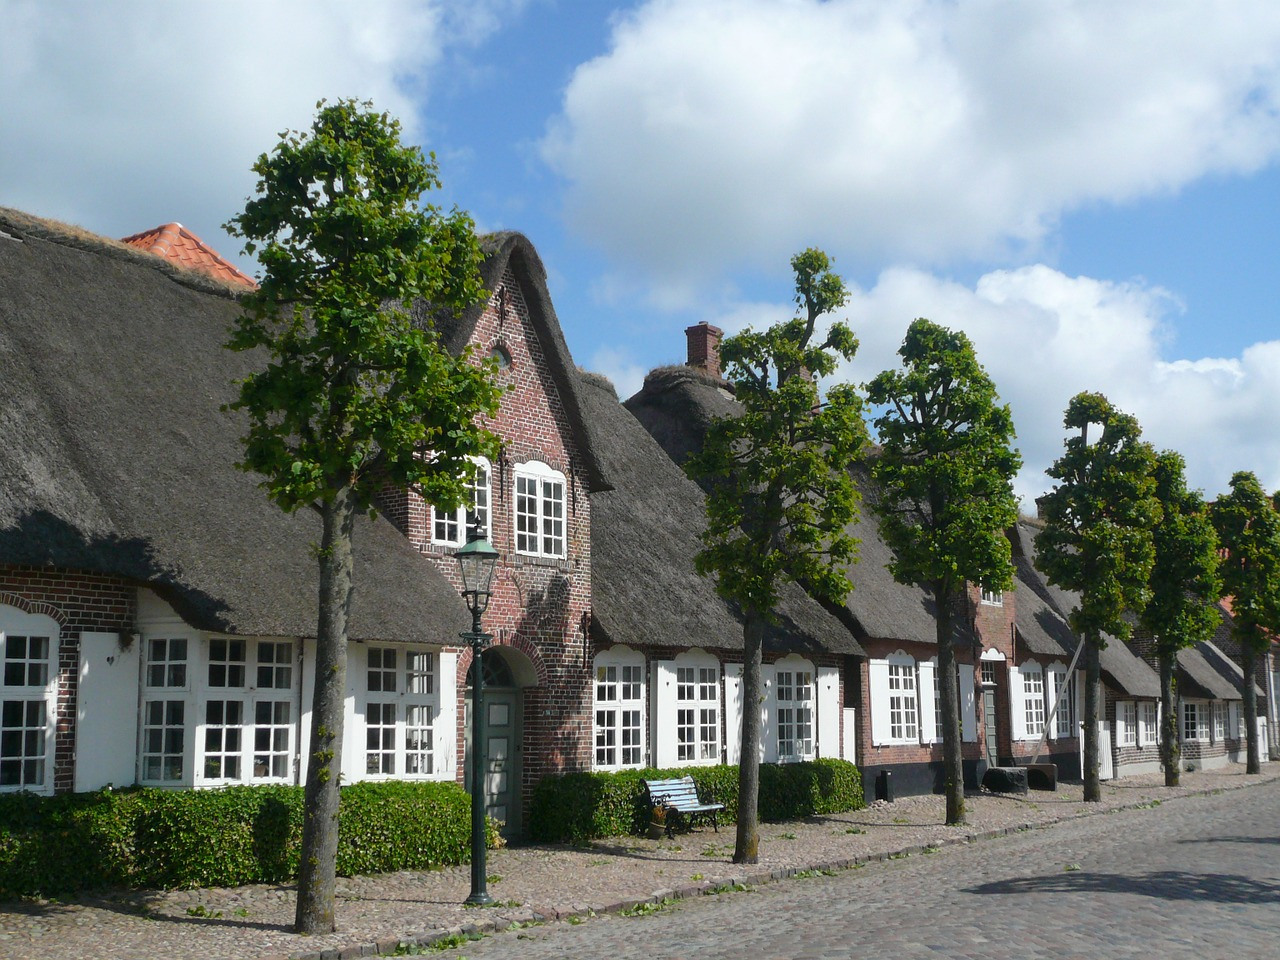 thatched roof,north sea,moegeltondern,free pictures, free photos, free images, royalty free, free illustrations, public domain